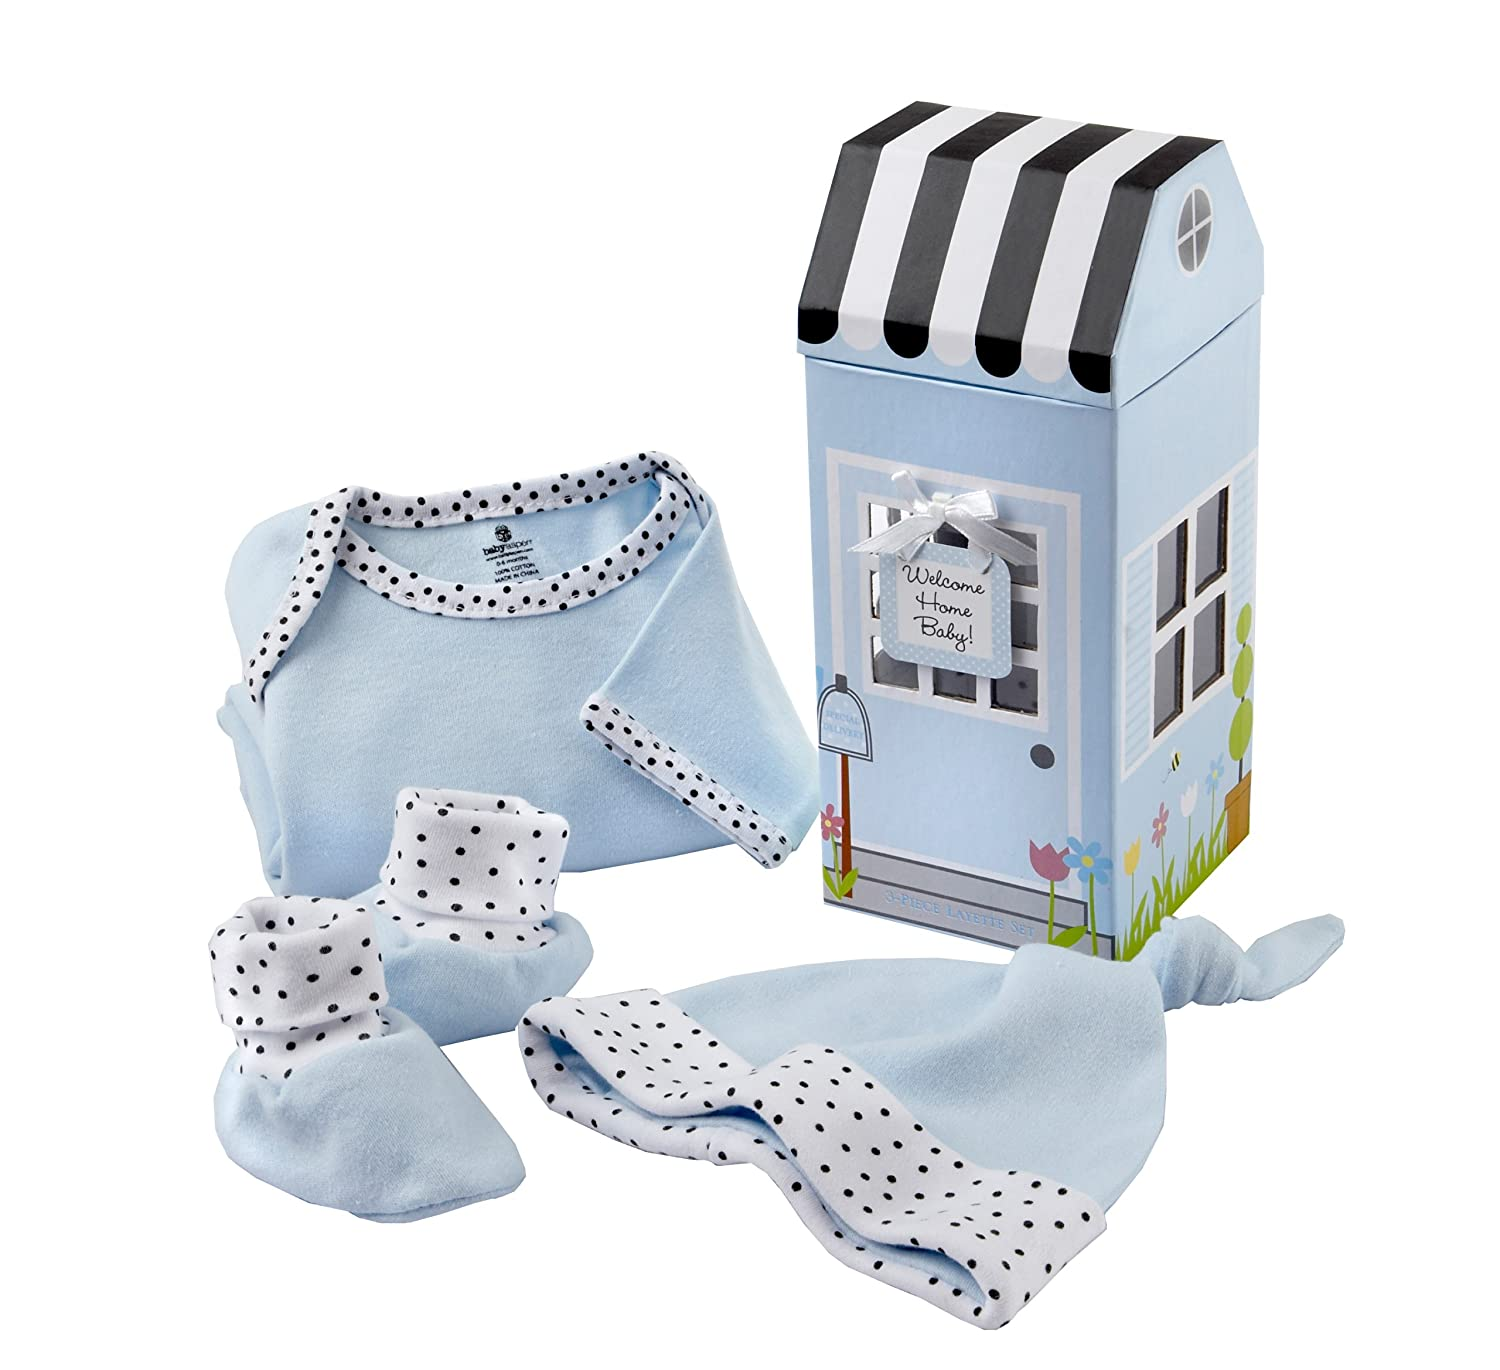 Amazon.com : Baby Aspen Welcome Home Baby 3-Piece Layette Gift Set ...